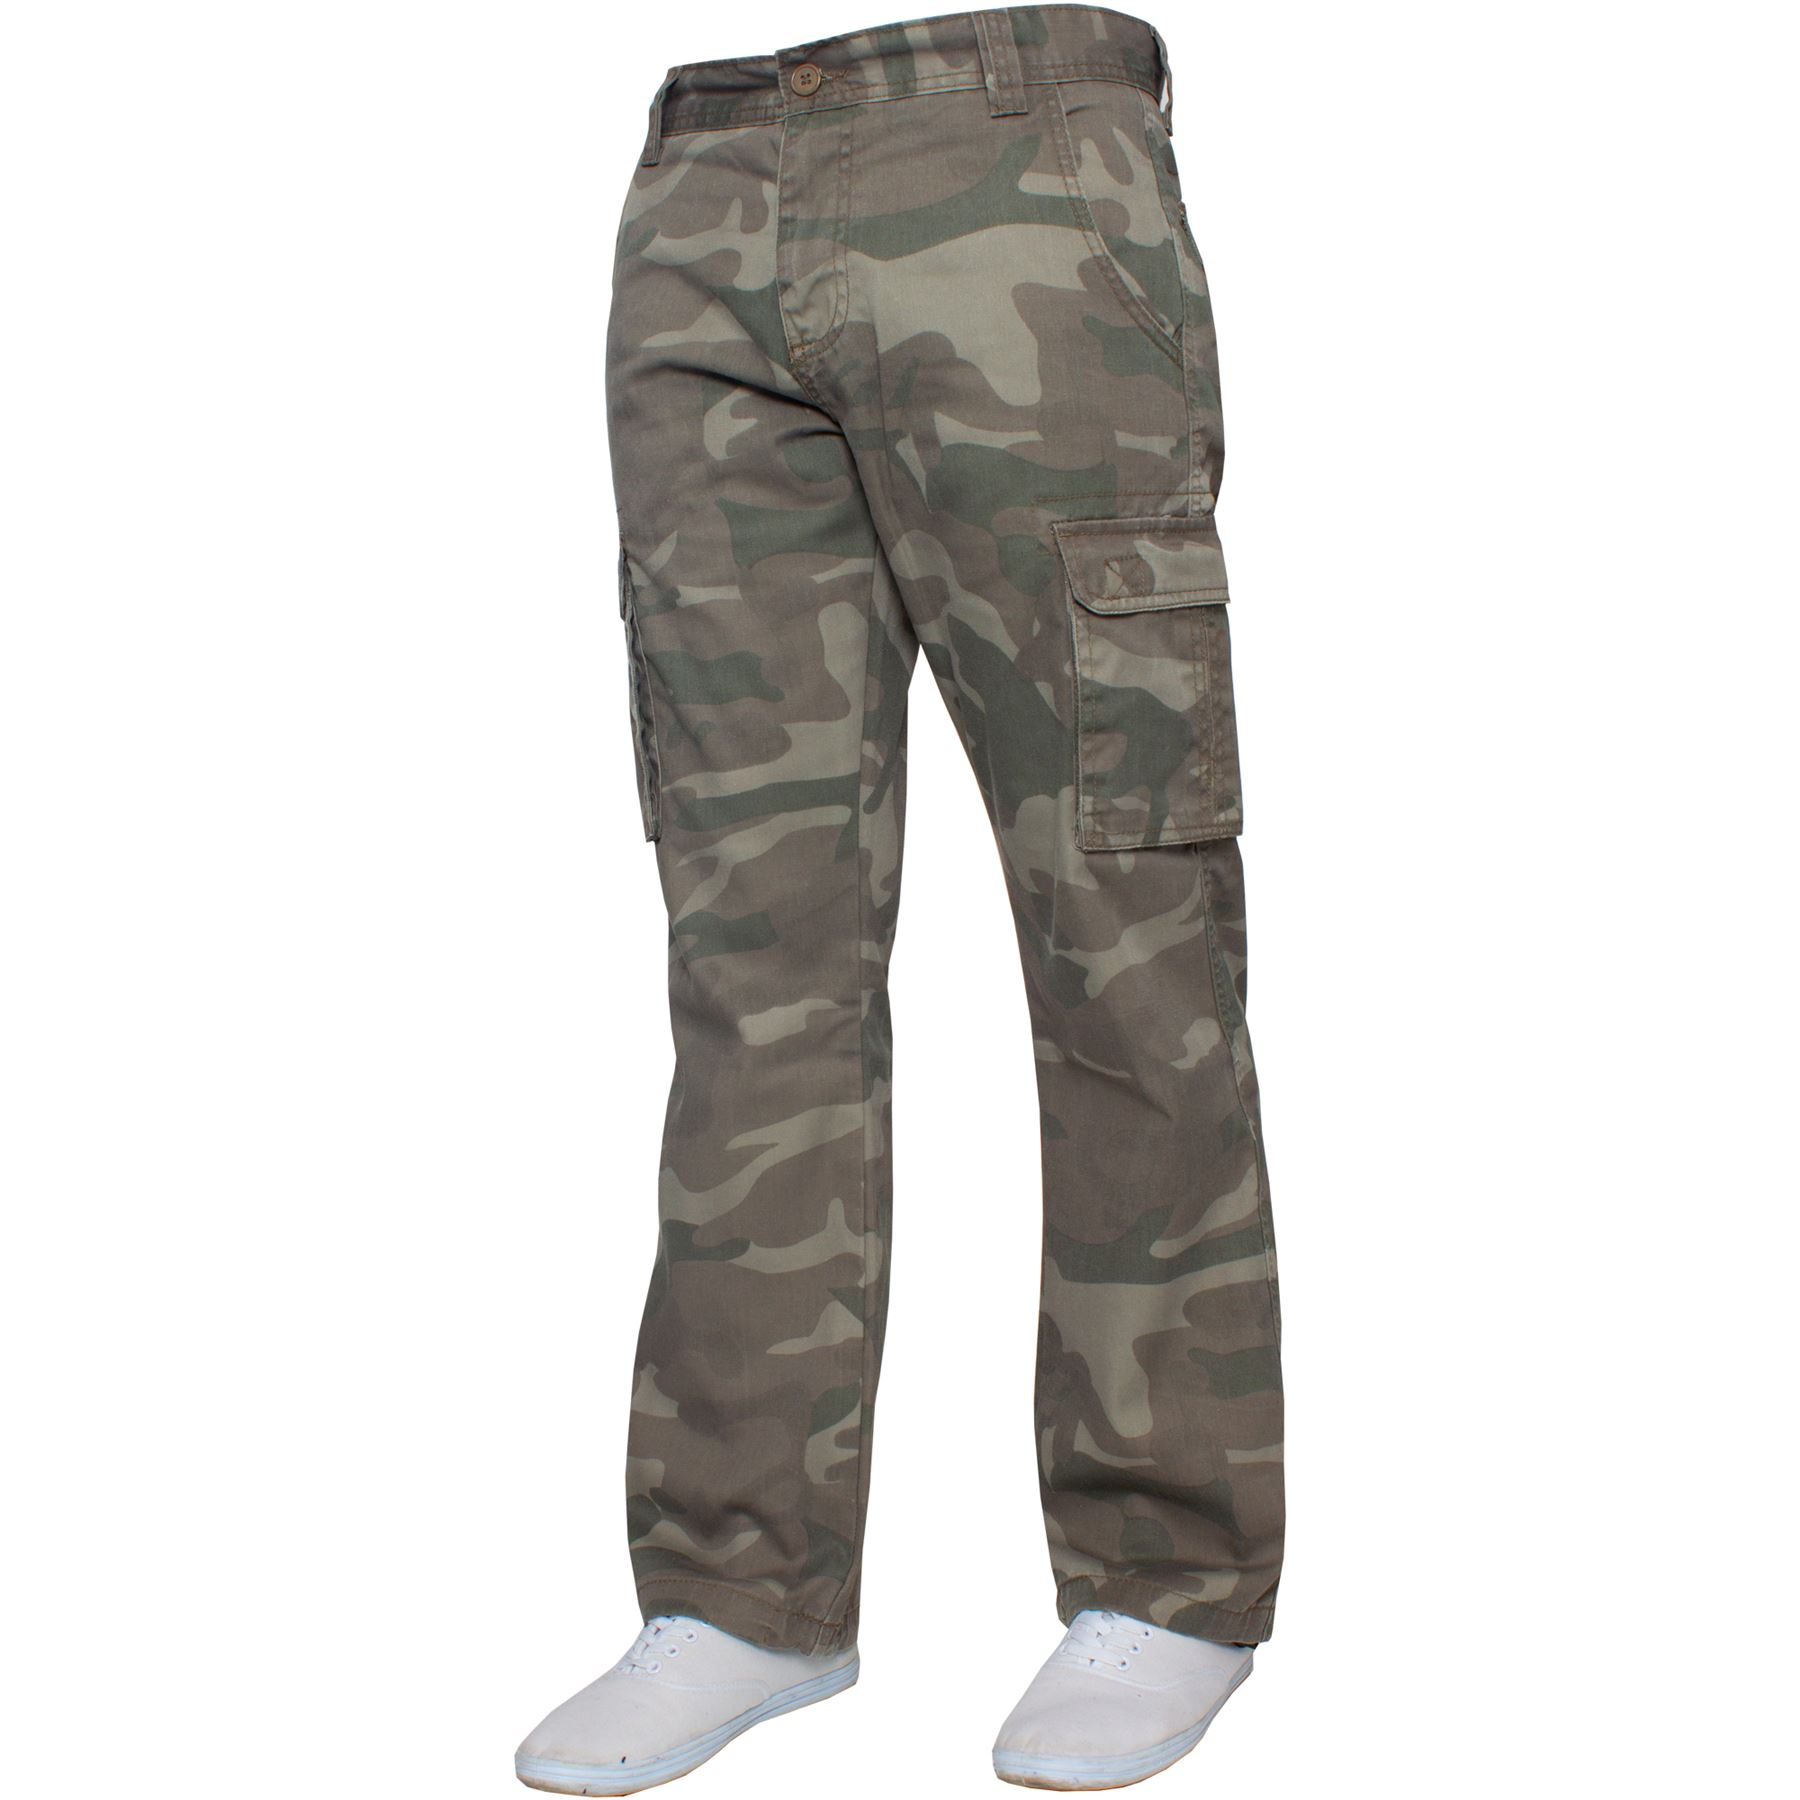 Kruze-Mens-Military-Combat-Trousers-Camouflage-Cargo-Camo-Army-Casual-Work-Pants miniatura 25